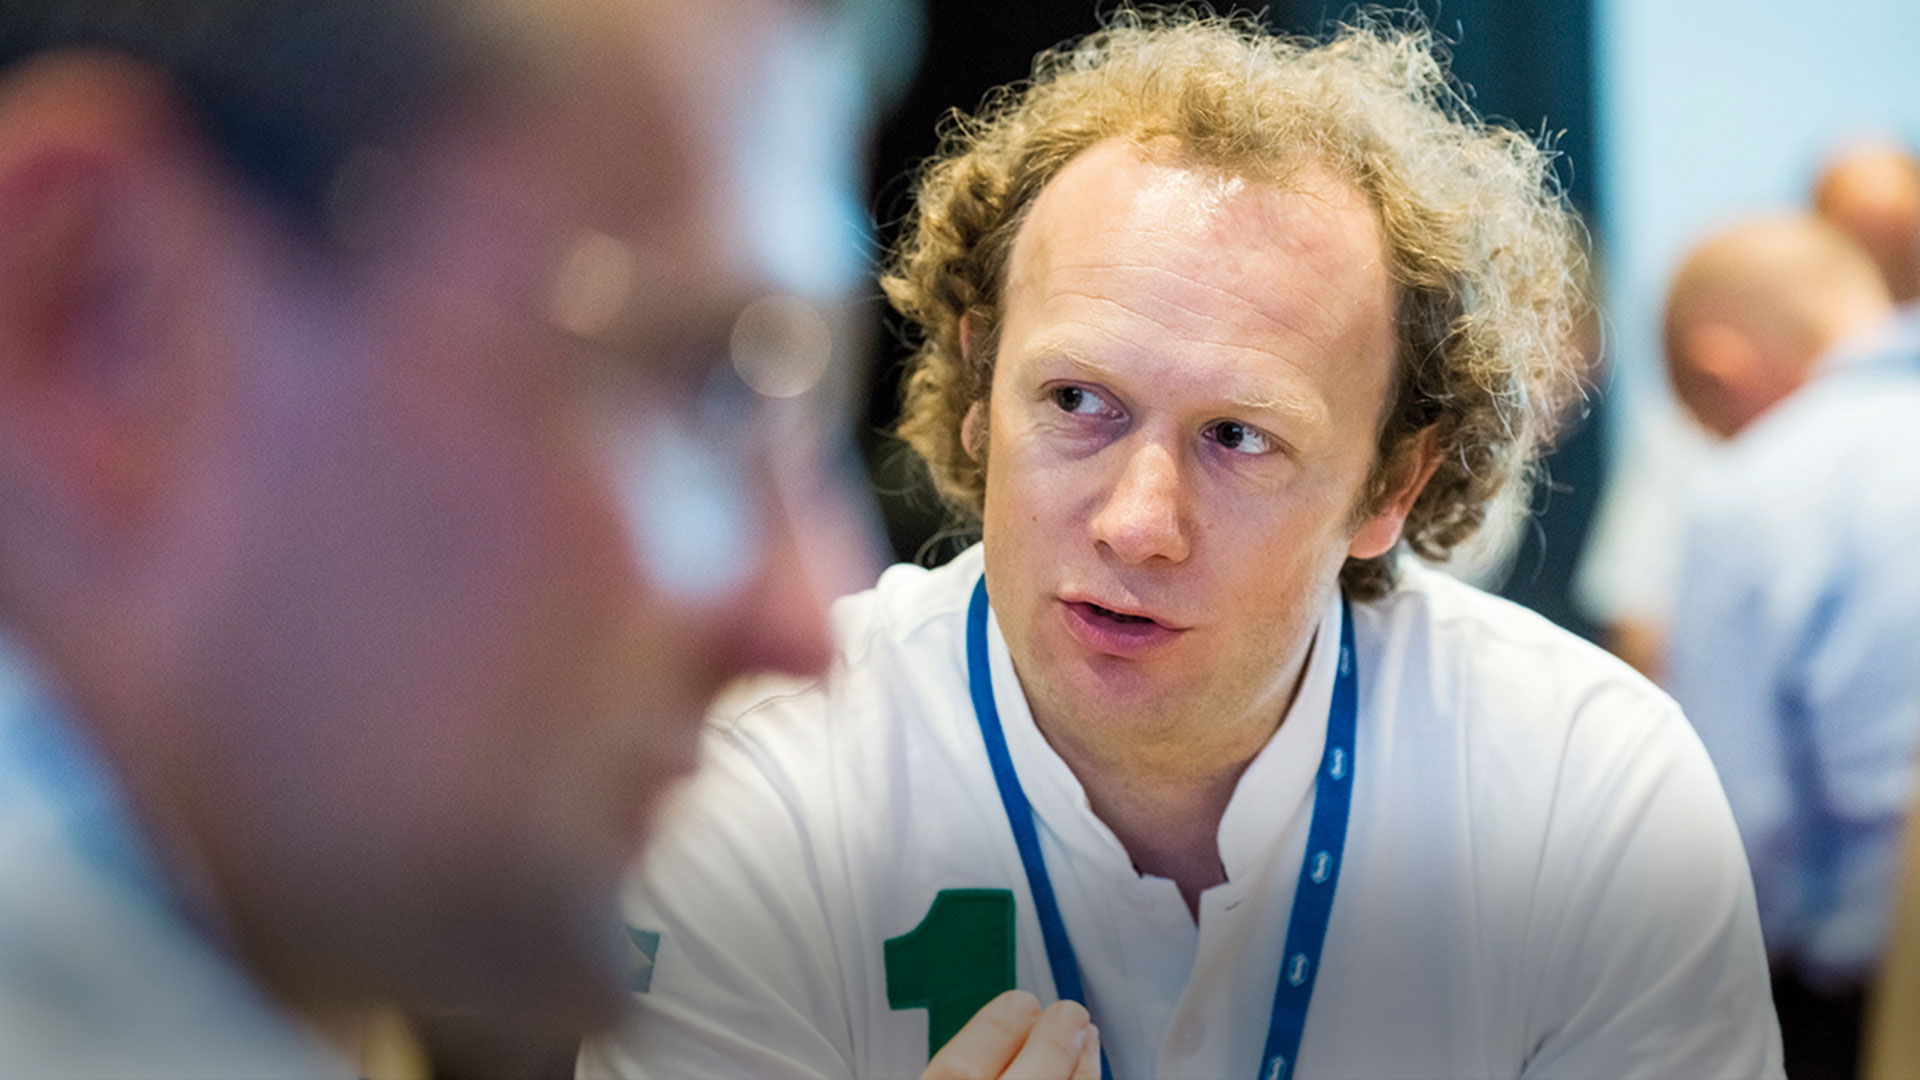 Dr Andrew Thomas talking to a colleague at a conference